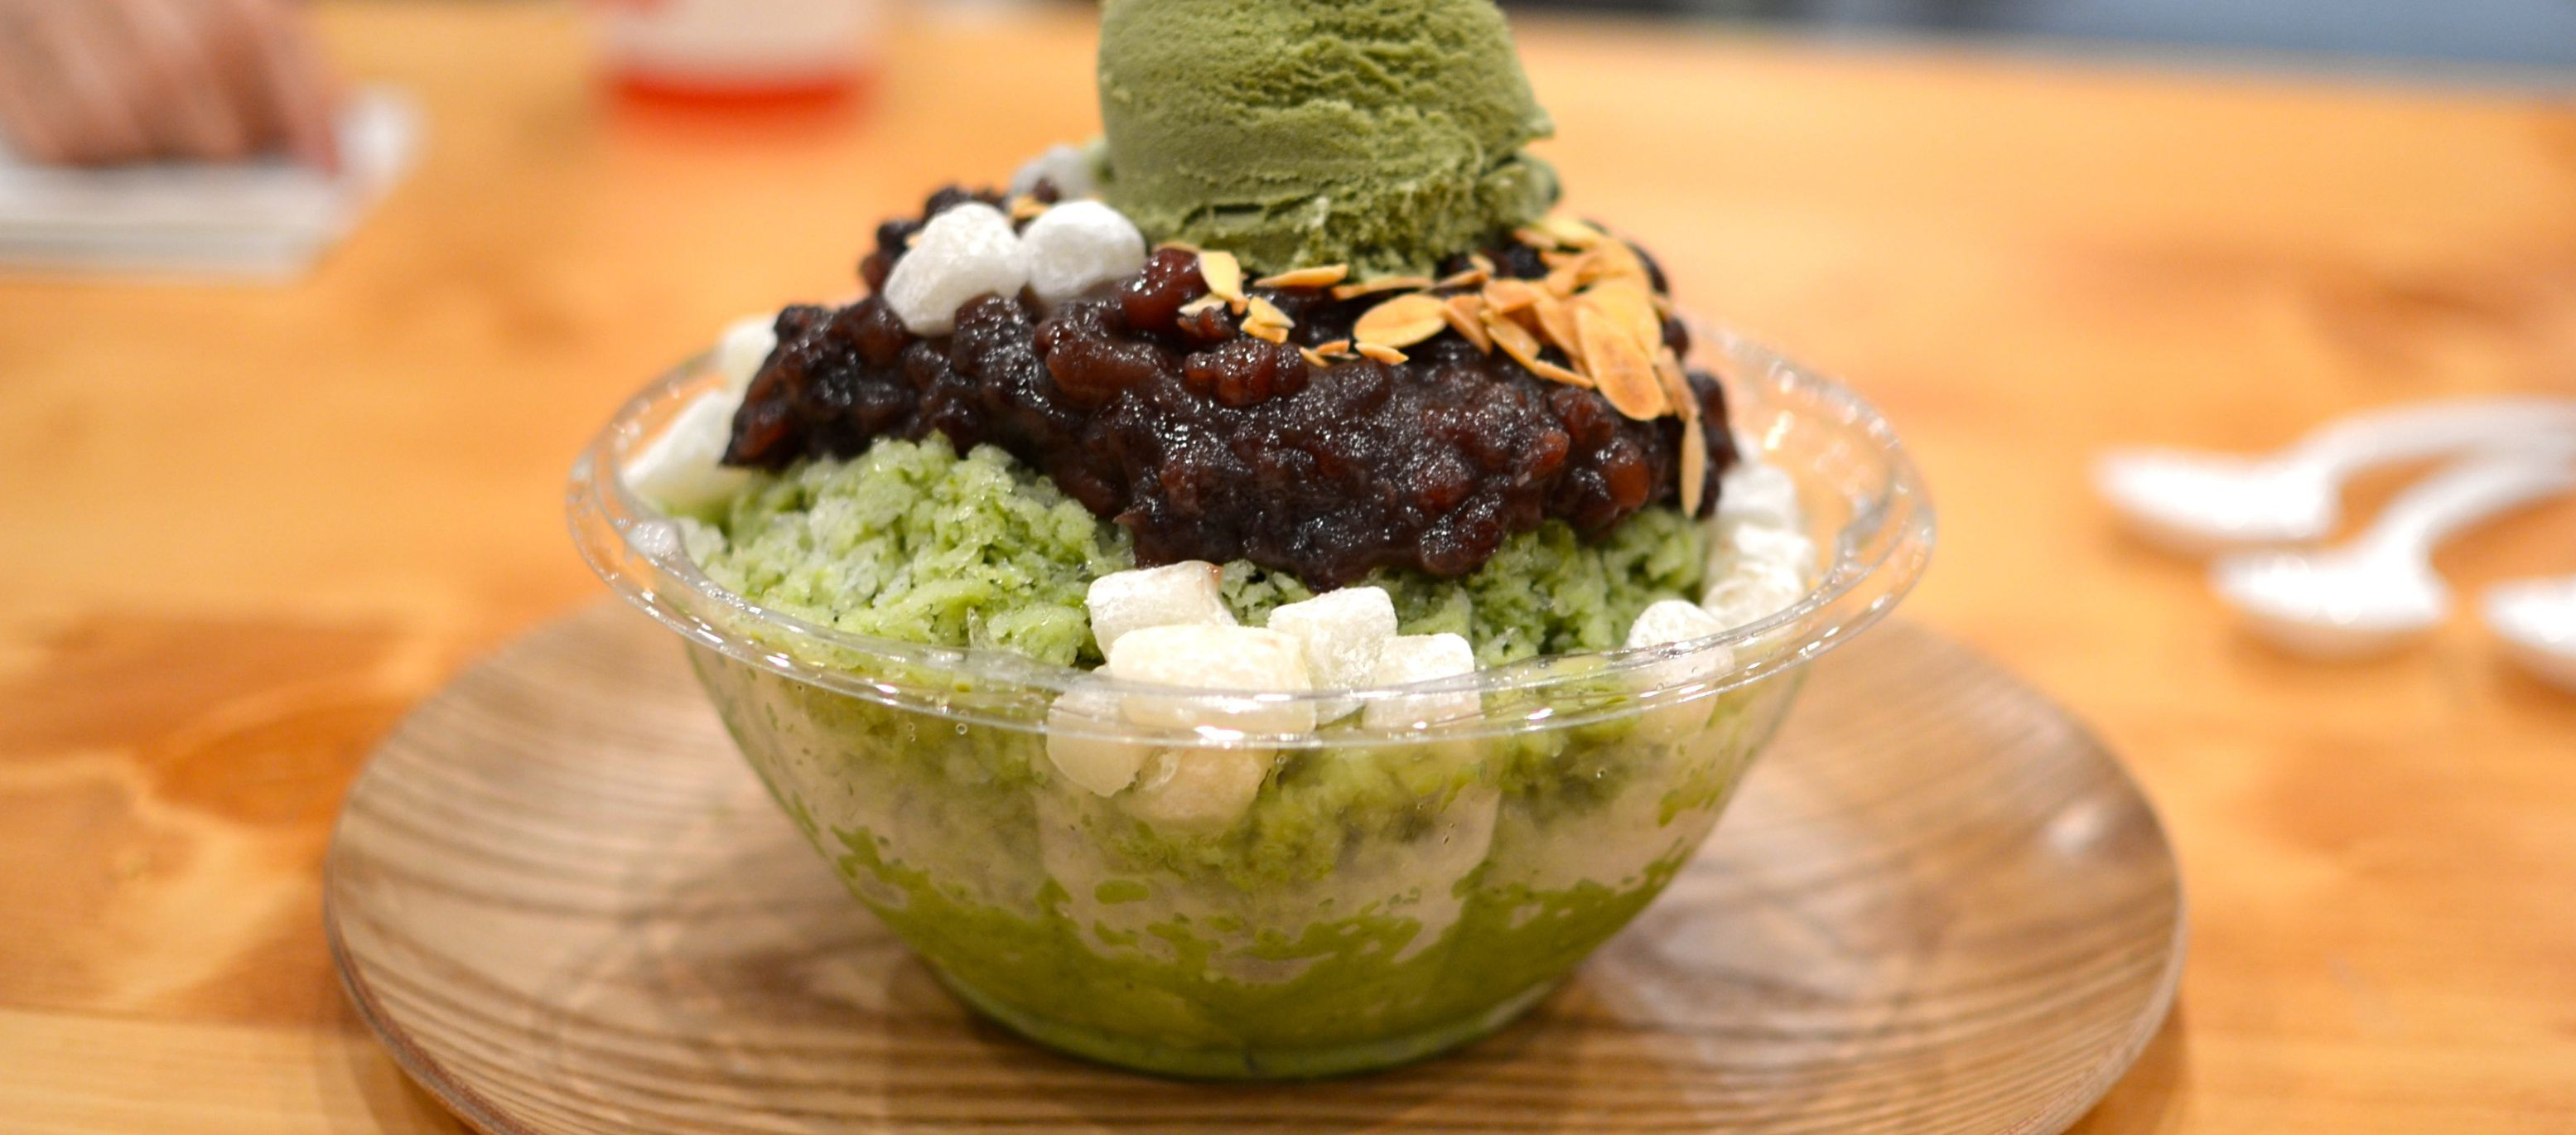 bingsu-sp3-1456030224816-383-0-1753-3110-crop-1456030239004